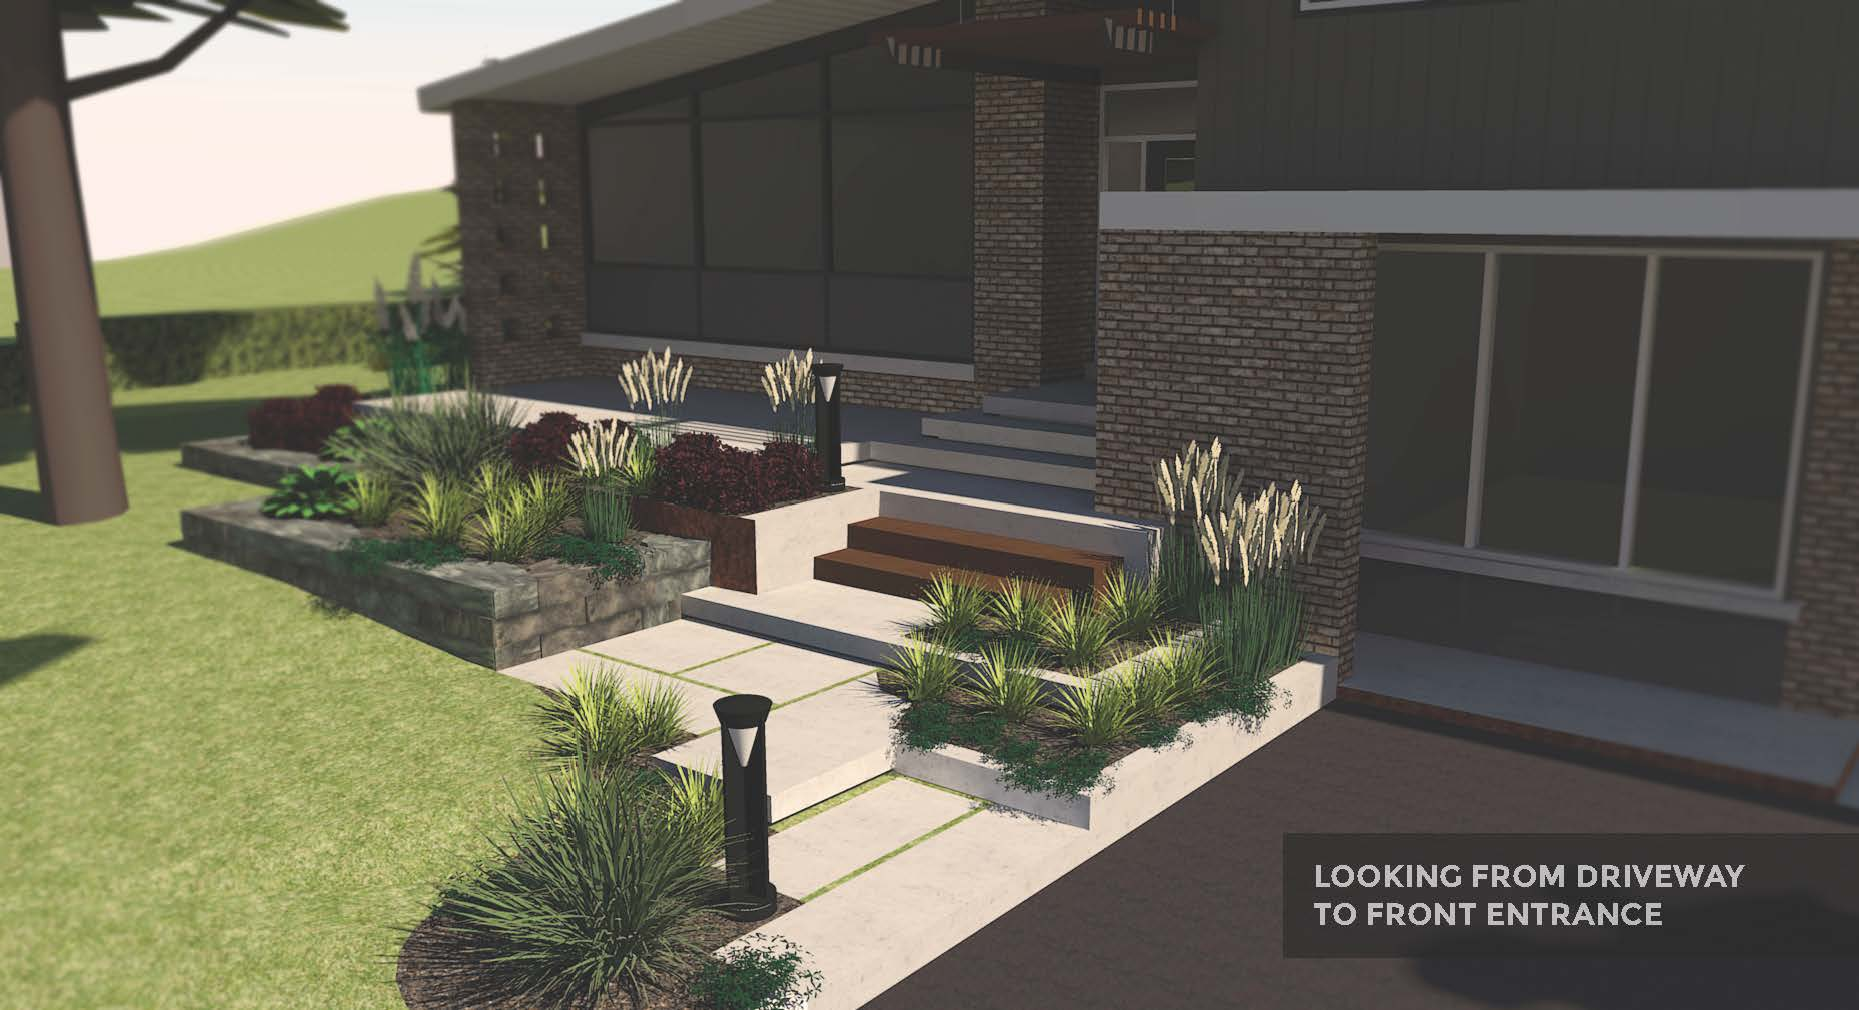 Front Entrance_mid-century Home Revamp_Riverview Design Solutions_Landscape Architecture_Concept Plan.jpg